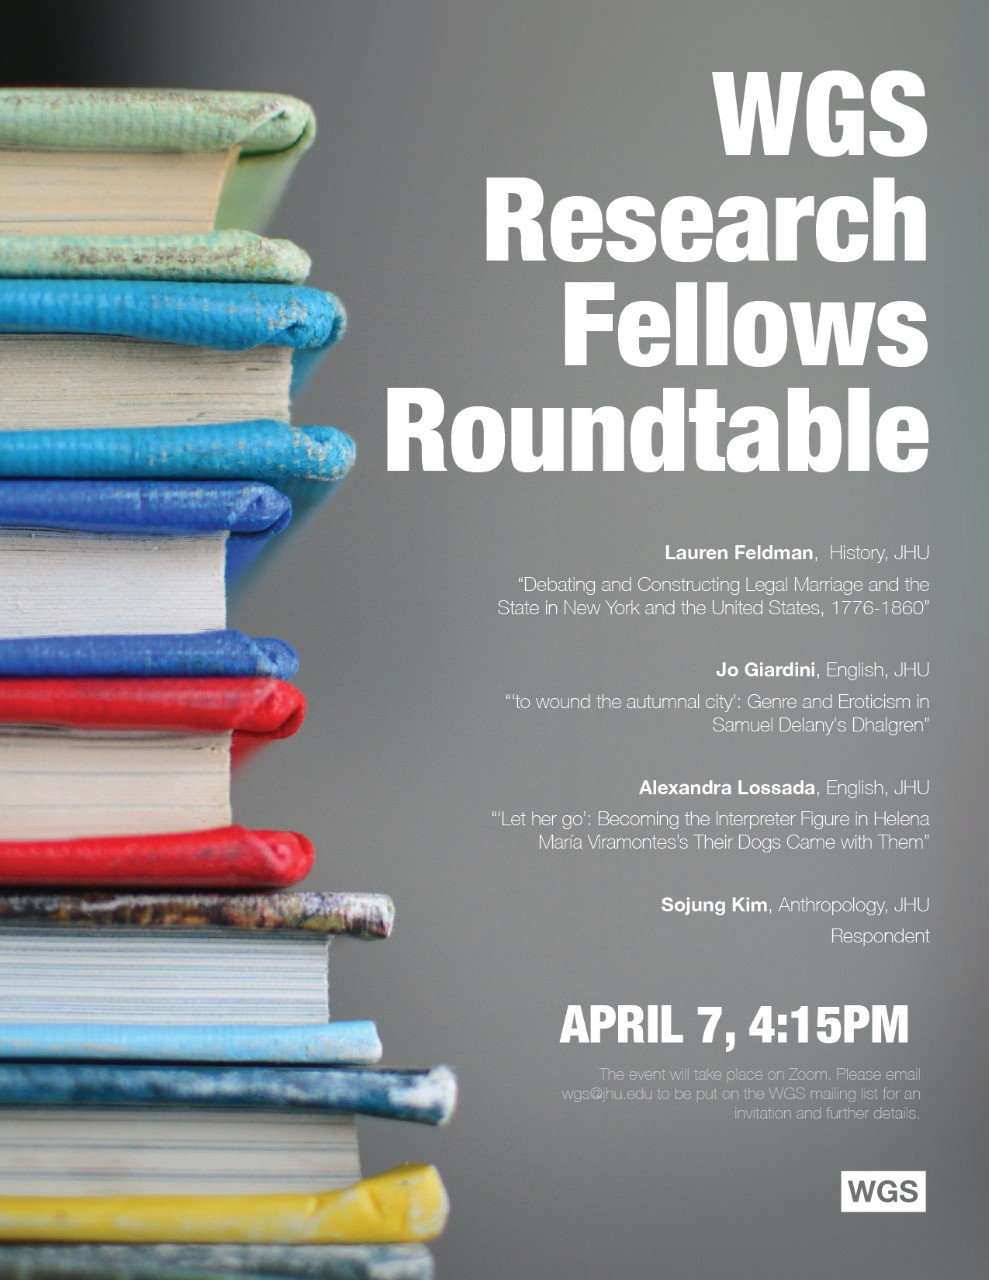 Please join us 7 April for a roundtable conversation with recent WGS Research Fellows.